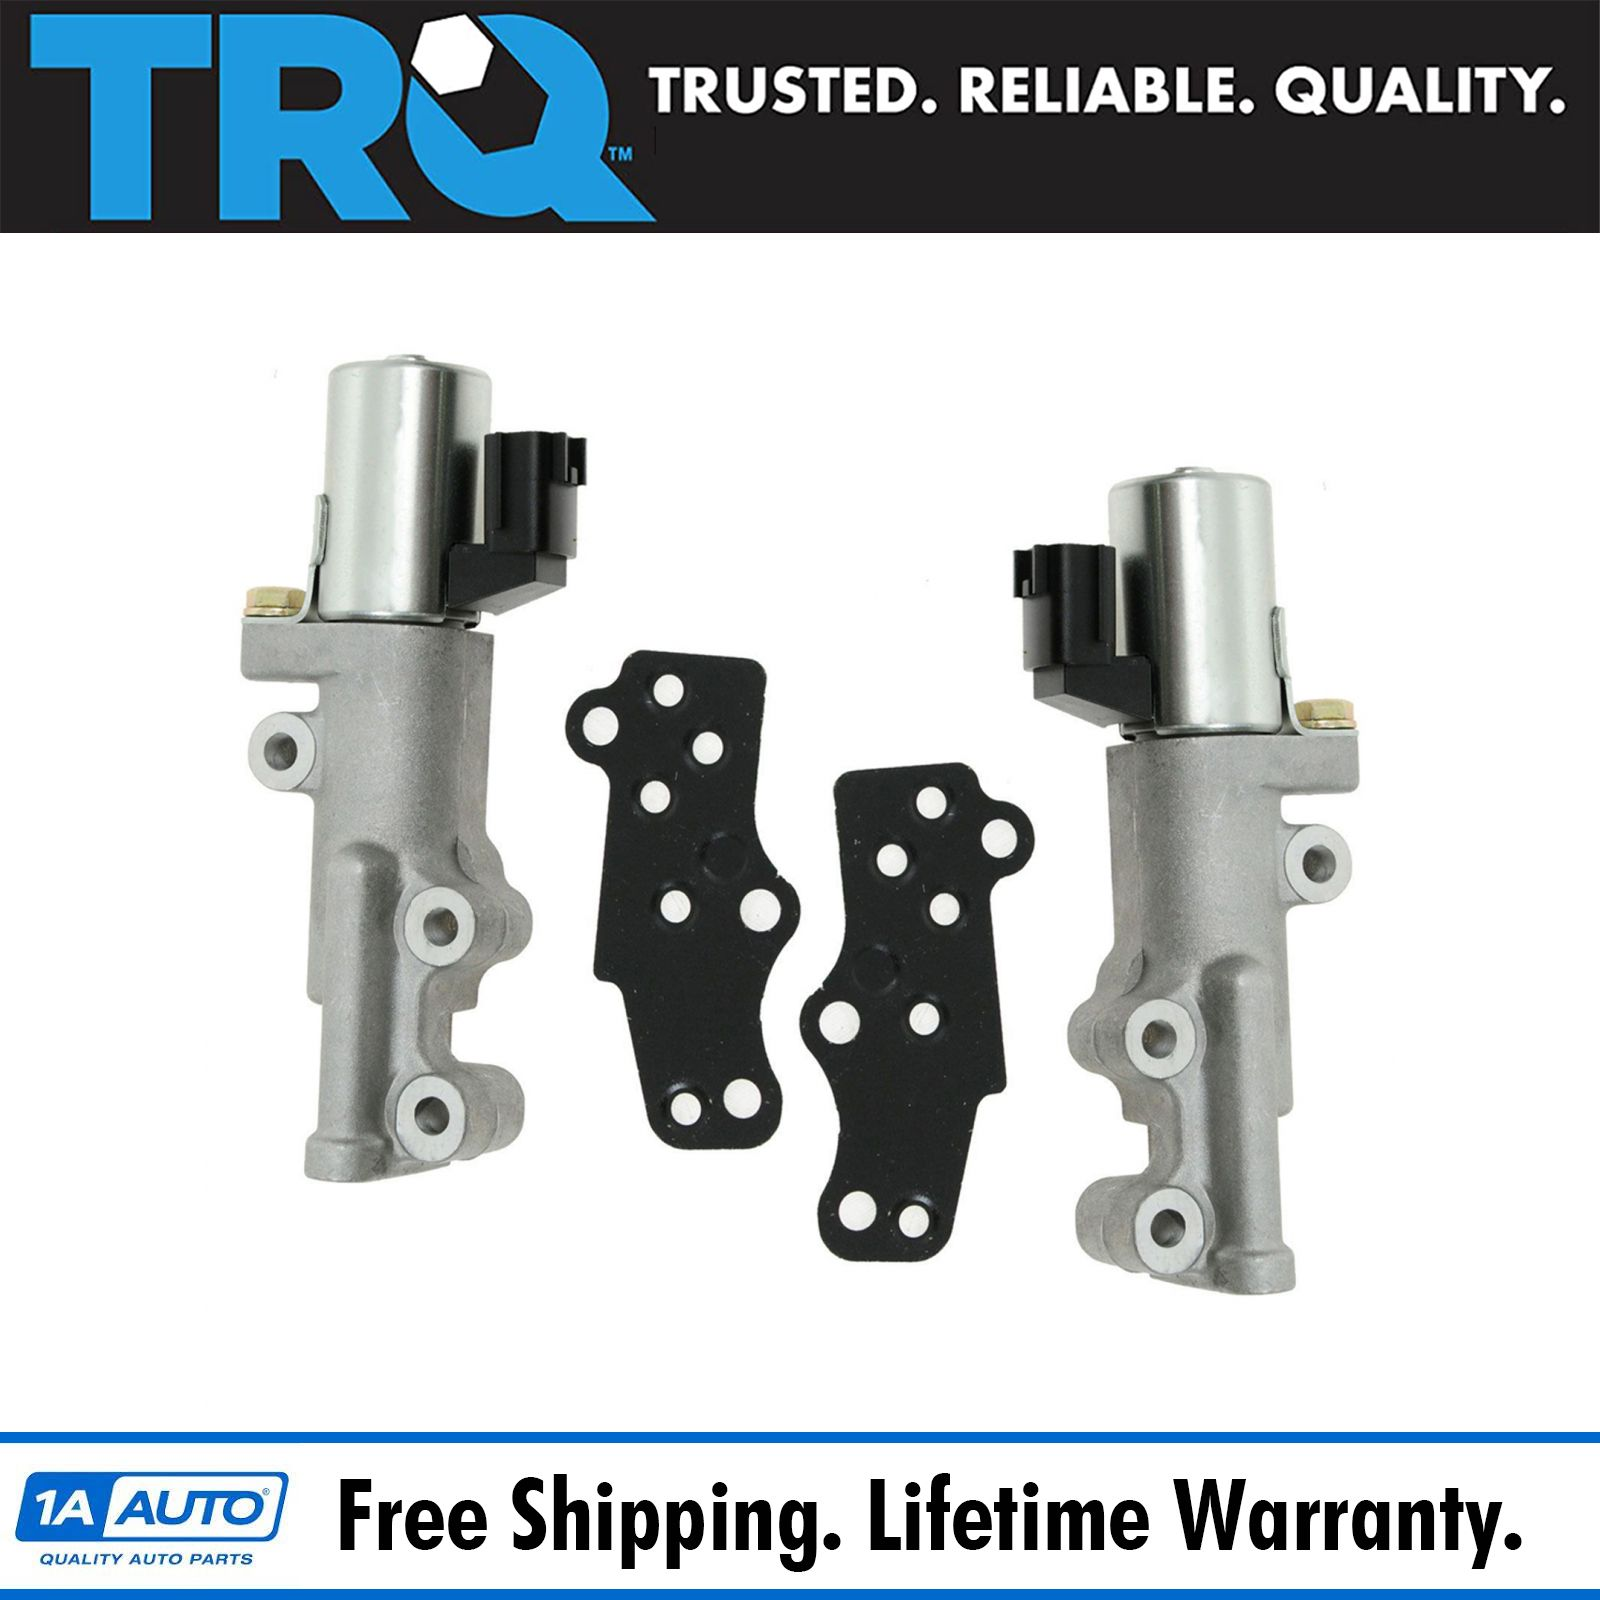 2016 Nissan Murano Camshaft: VVT Variable Valve Timing Solenoid Pair Set For I35 Altima